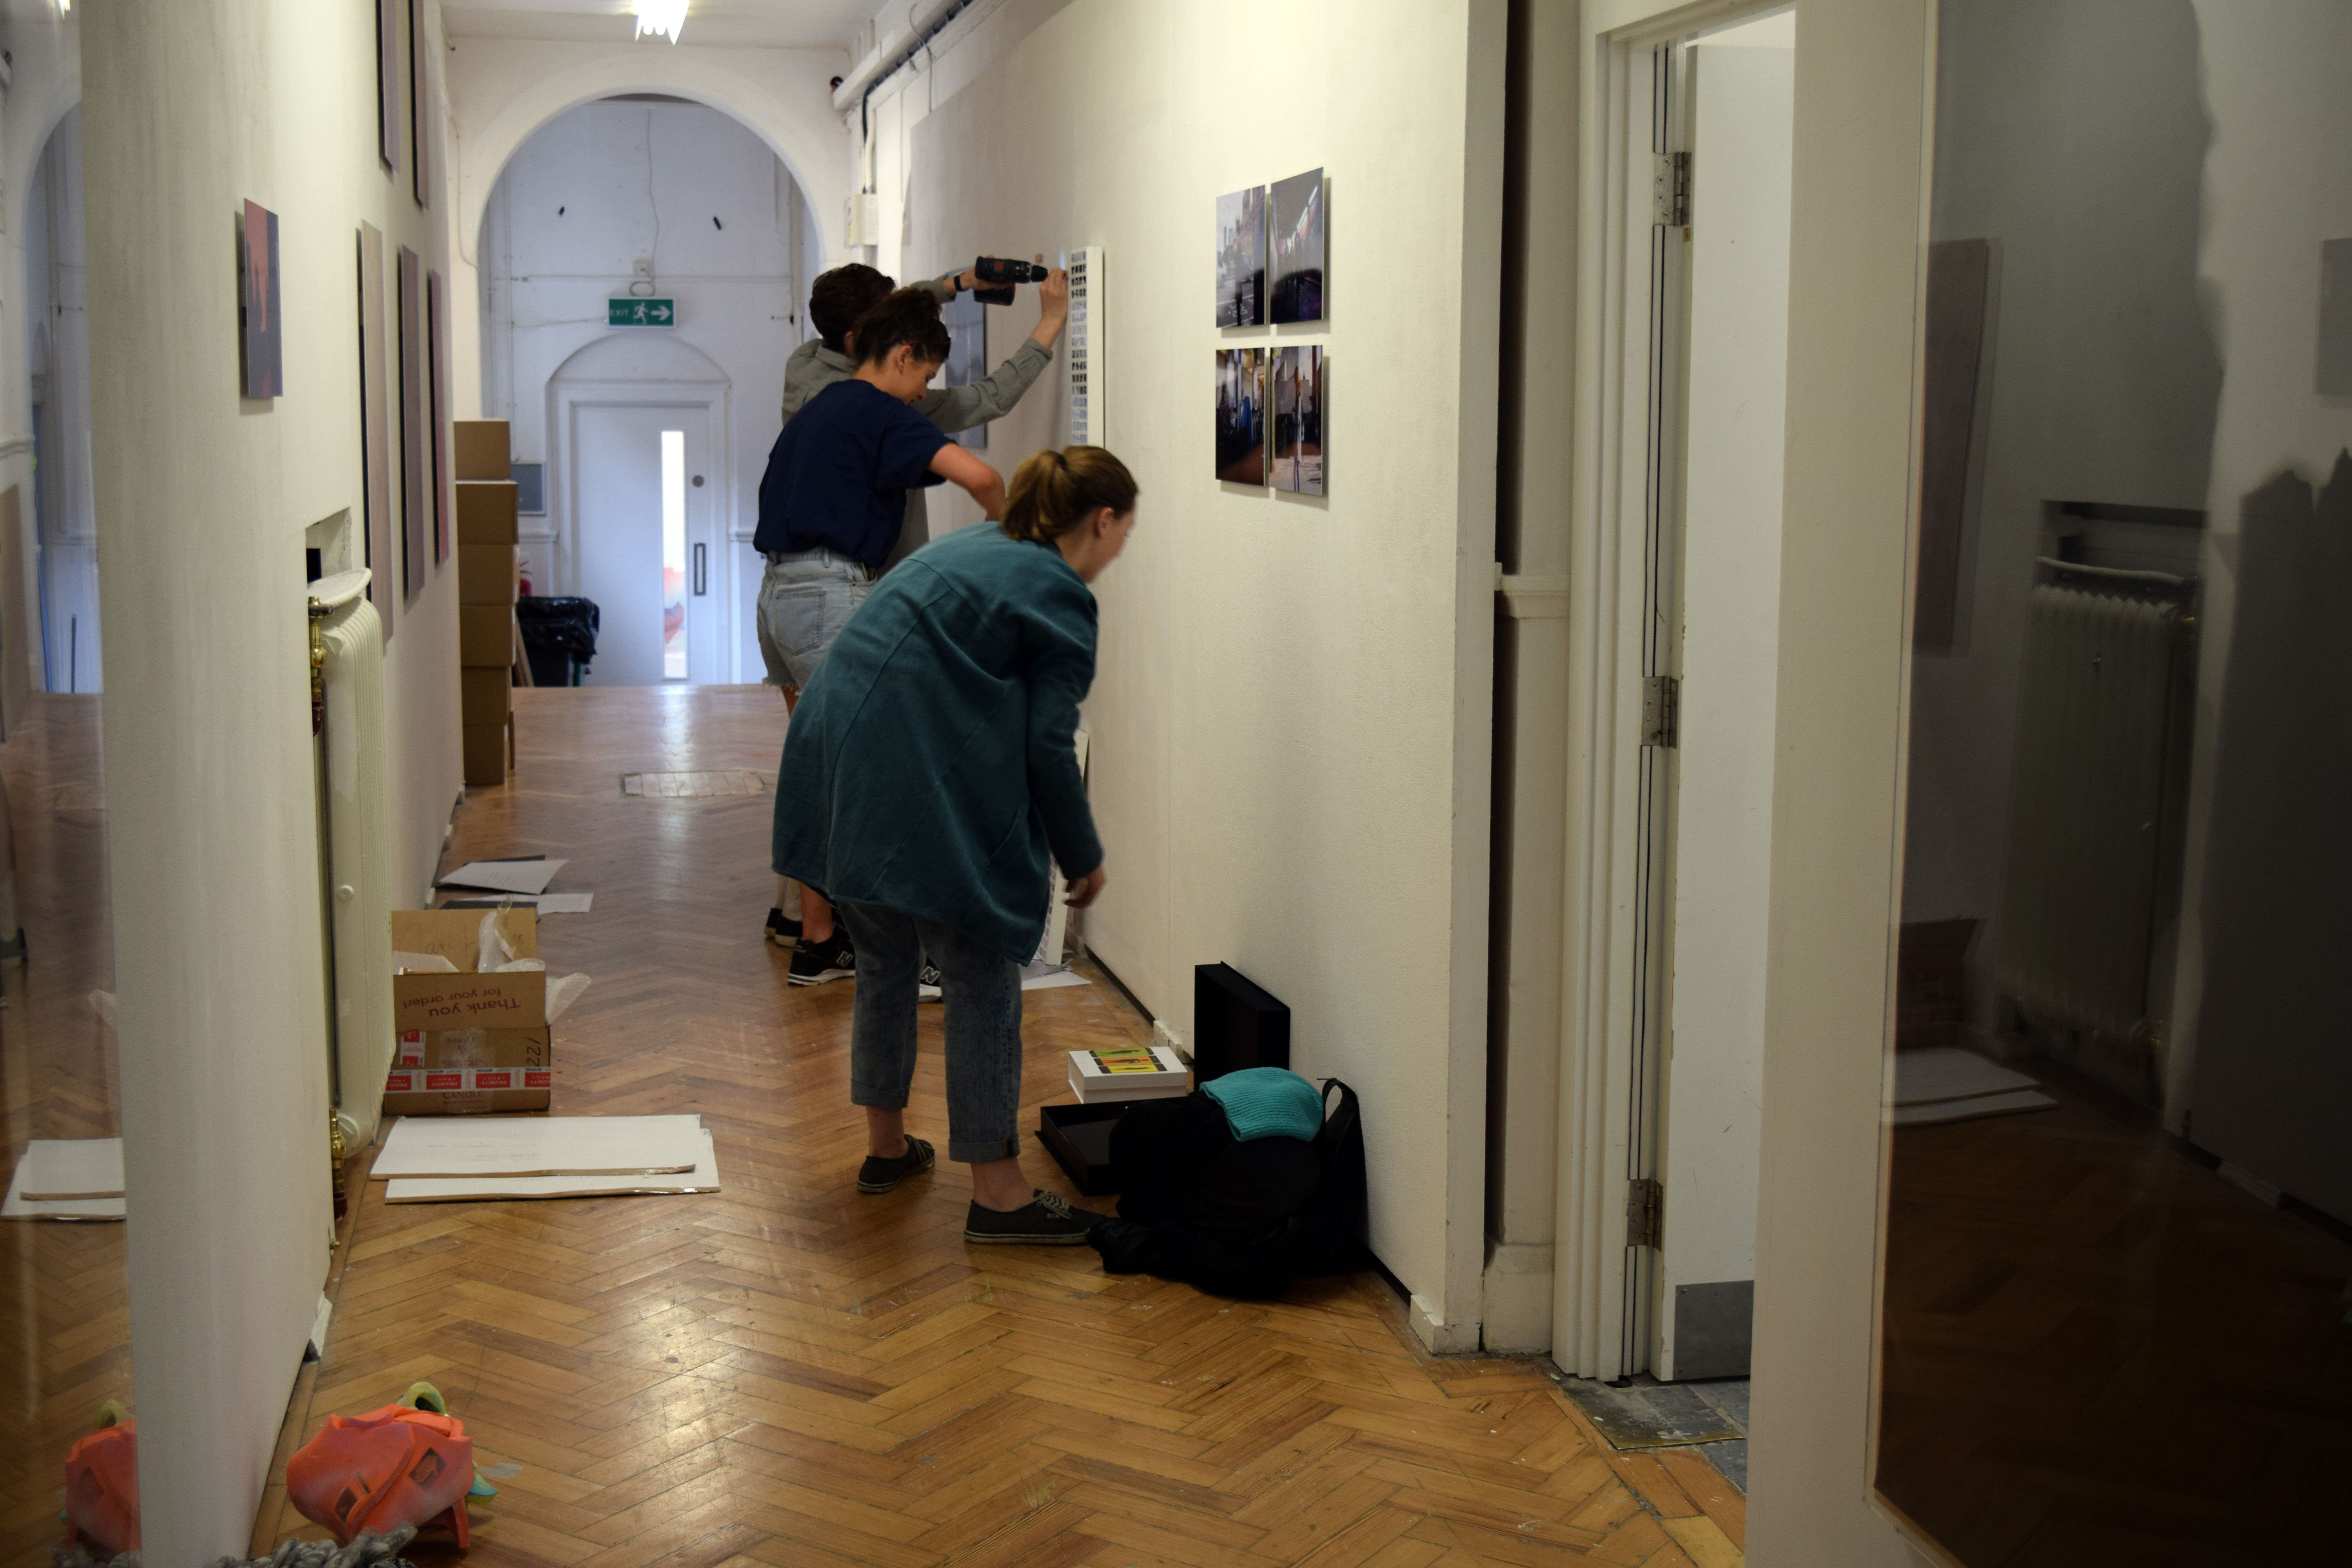 BA Photography students hanging in the corridor